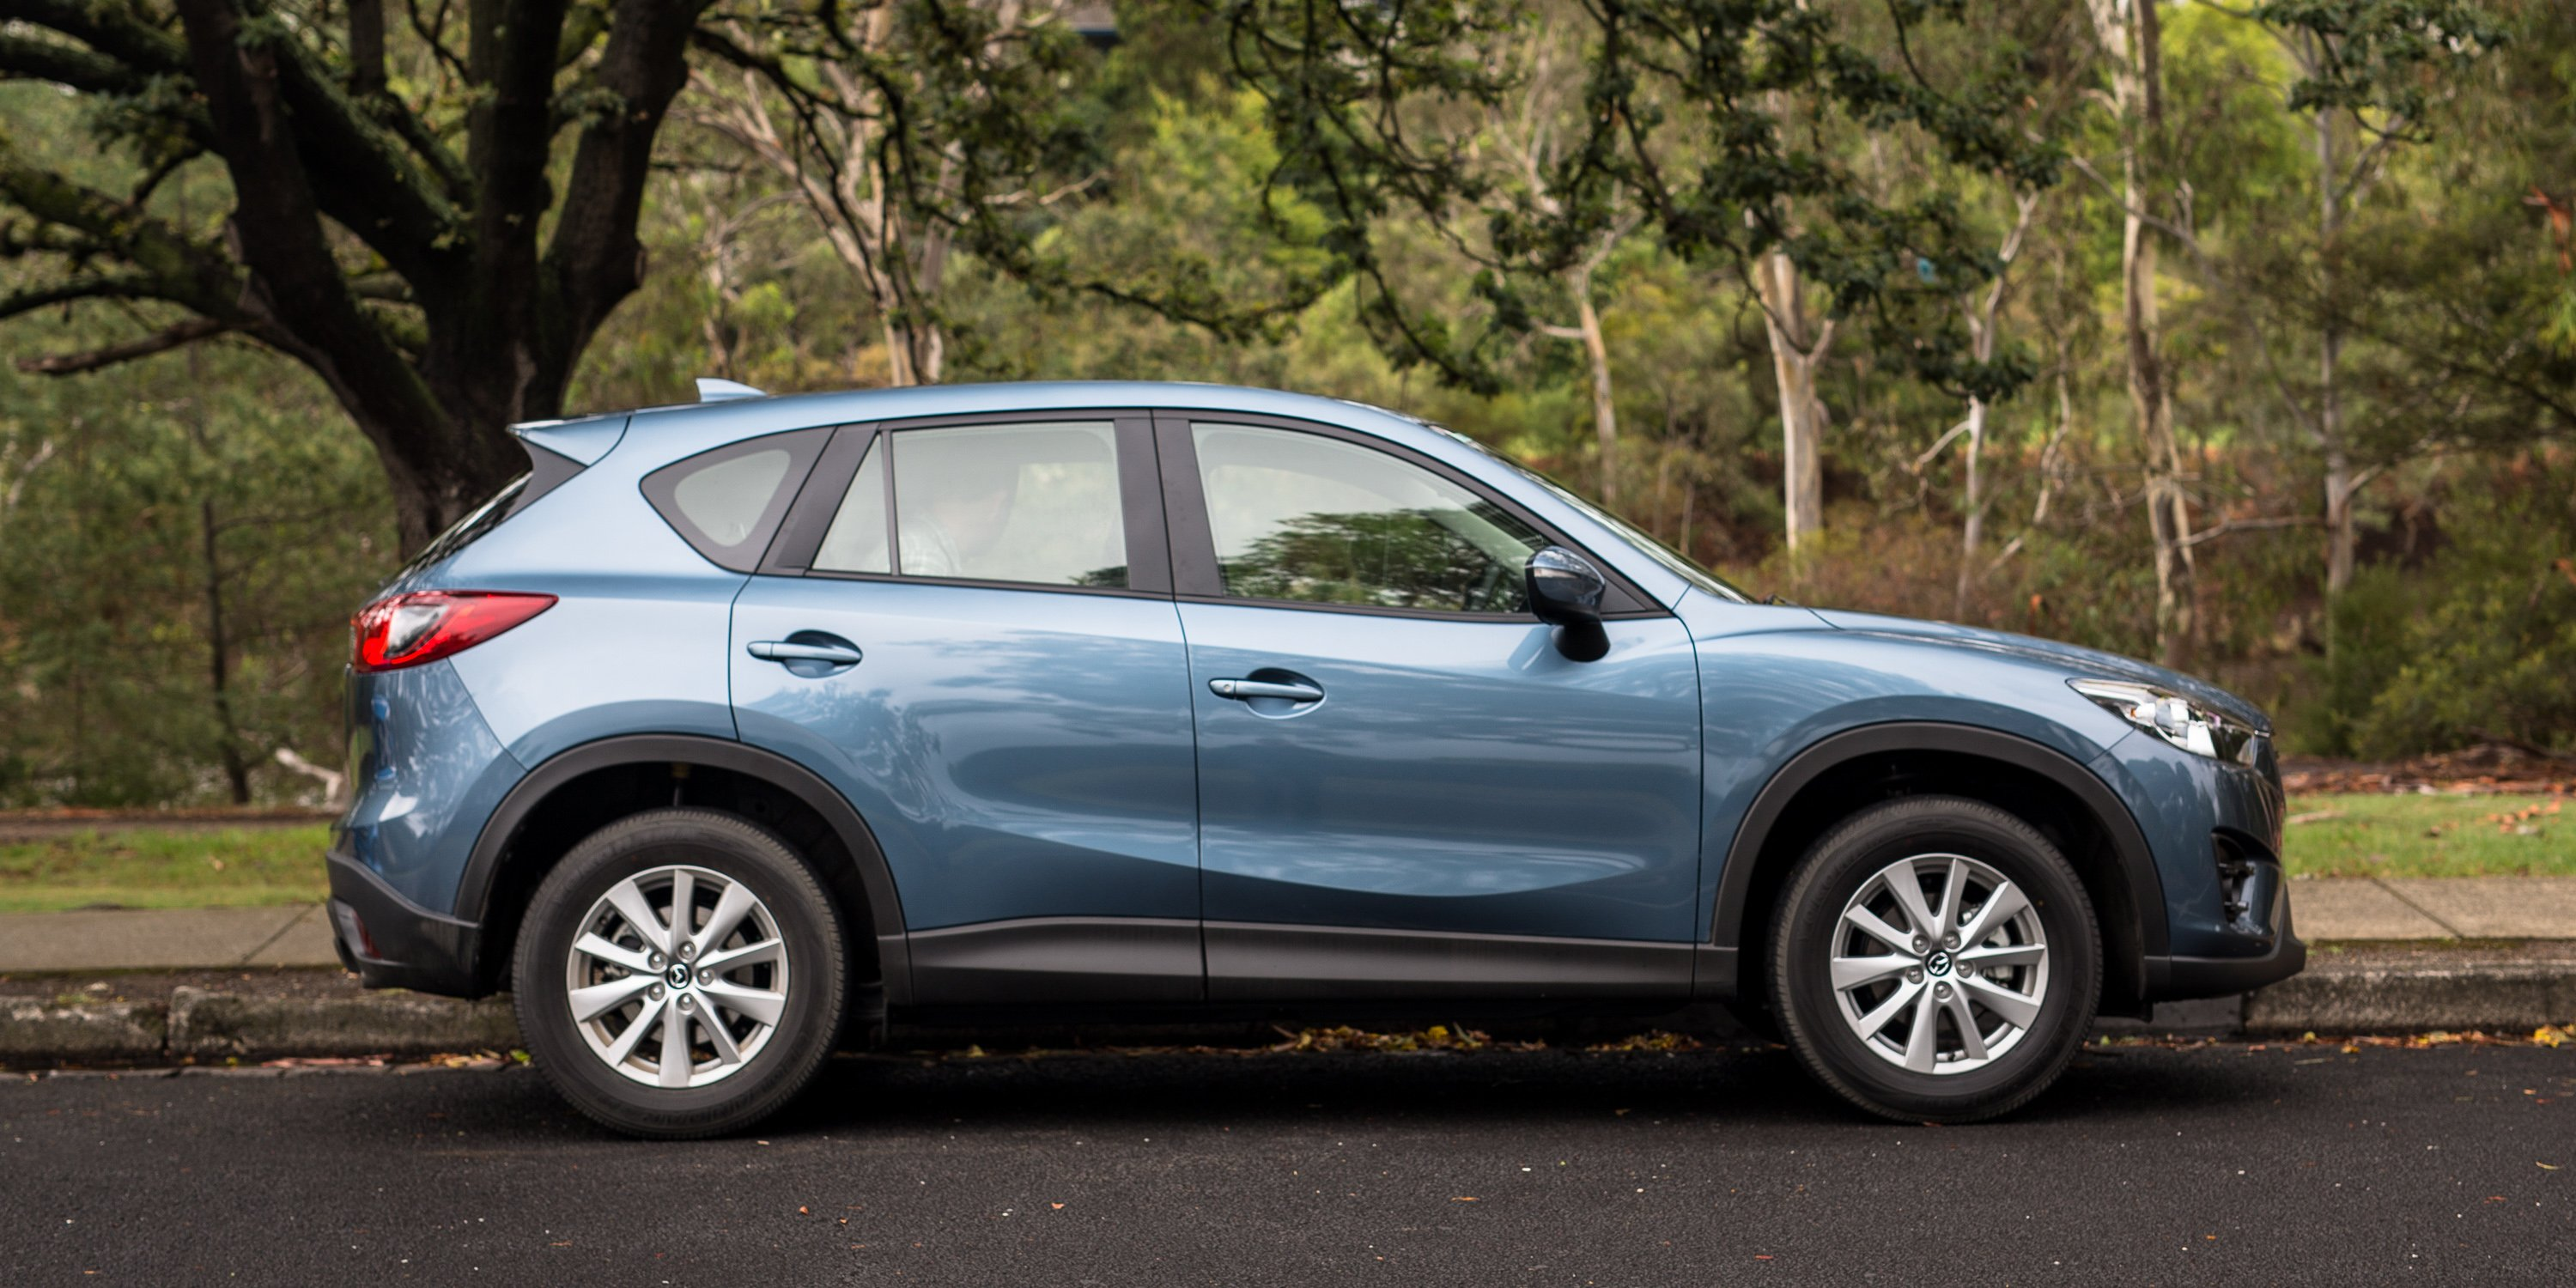 touring review grand mazda cx crossover